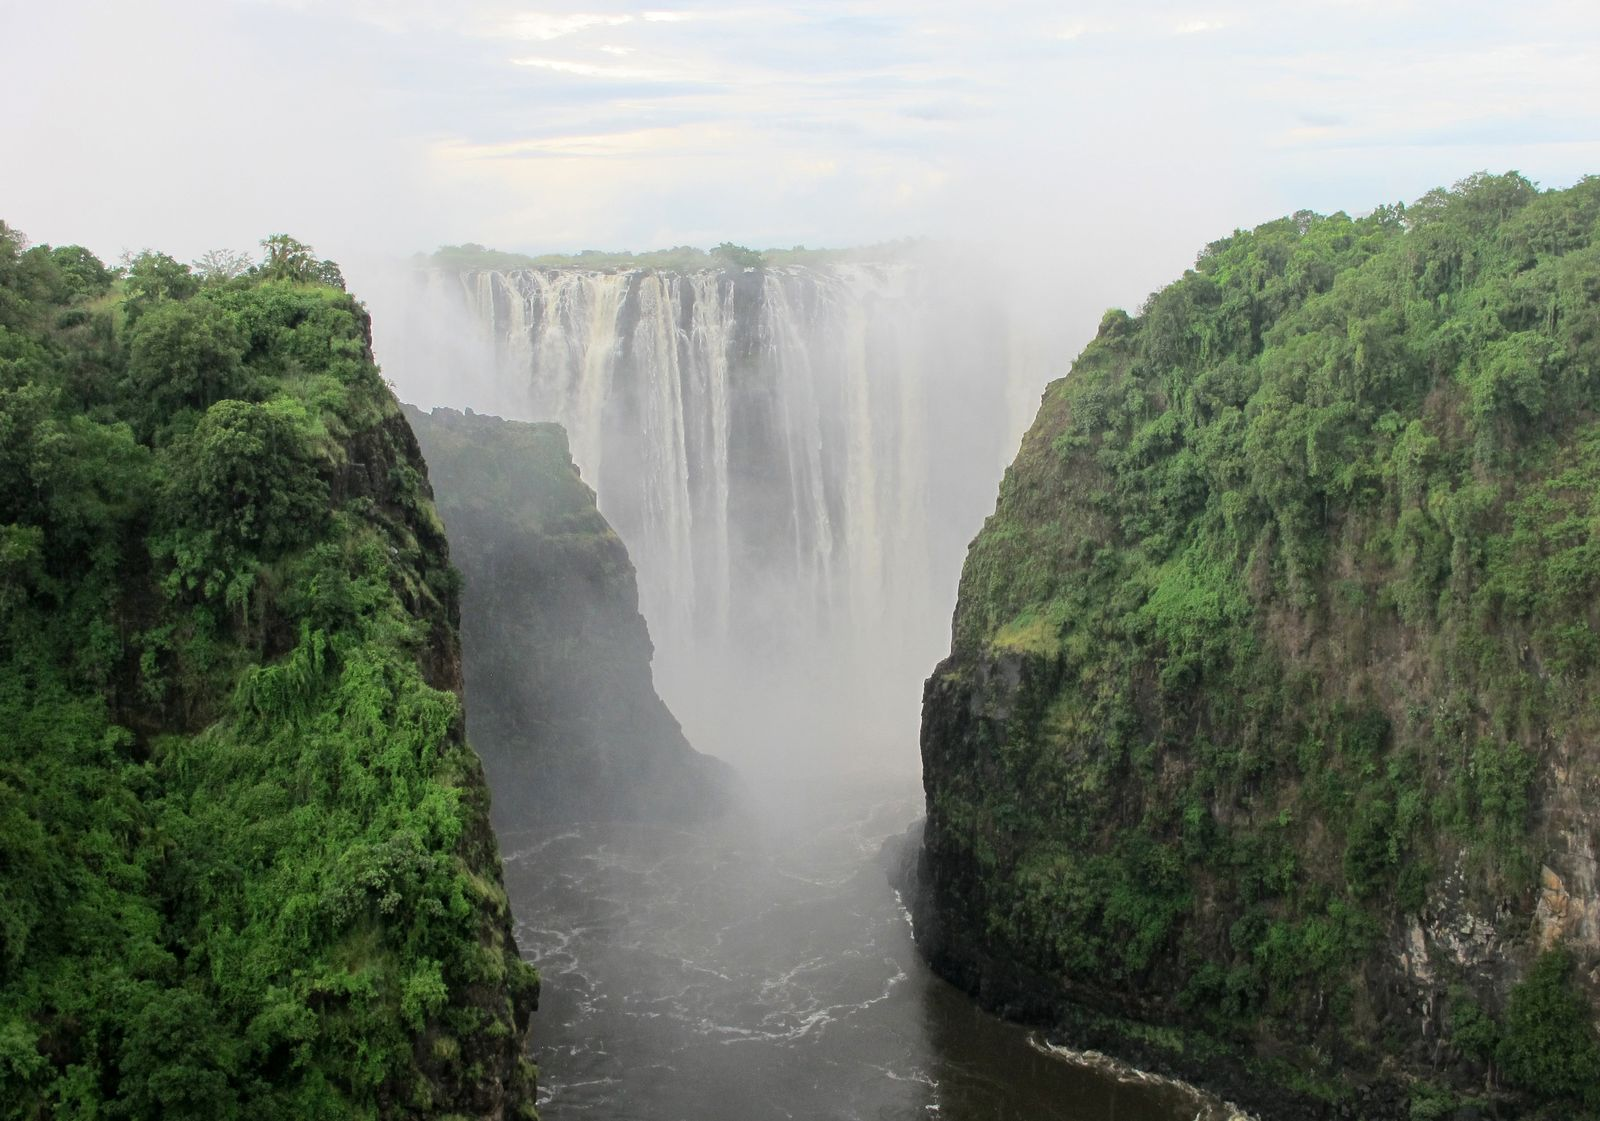 AFRICA-DROUGHT/VICTORIAFALLS